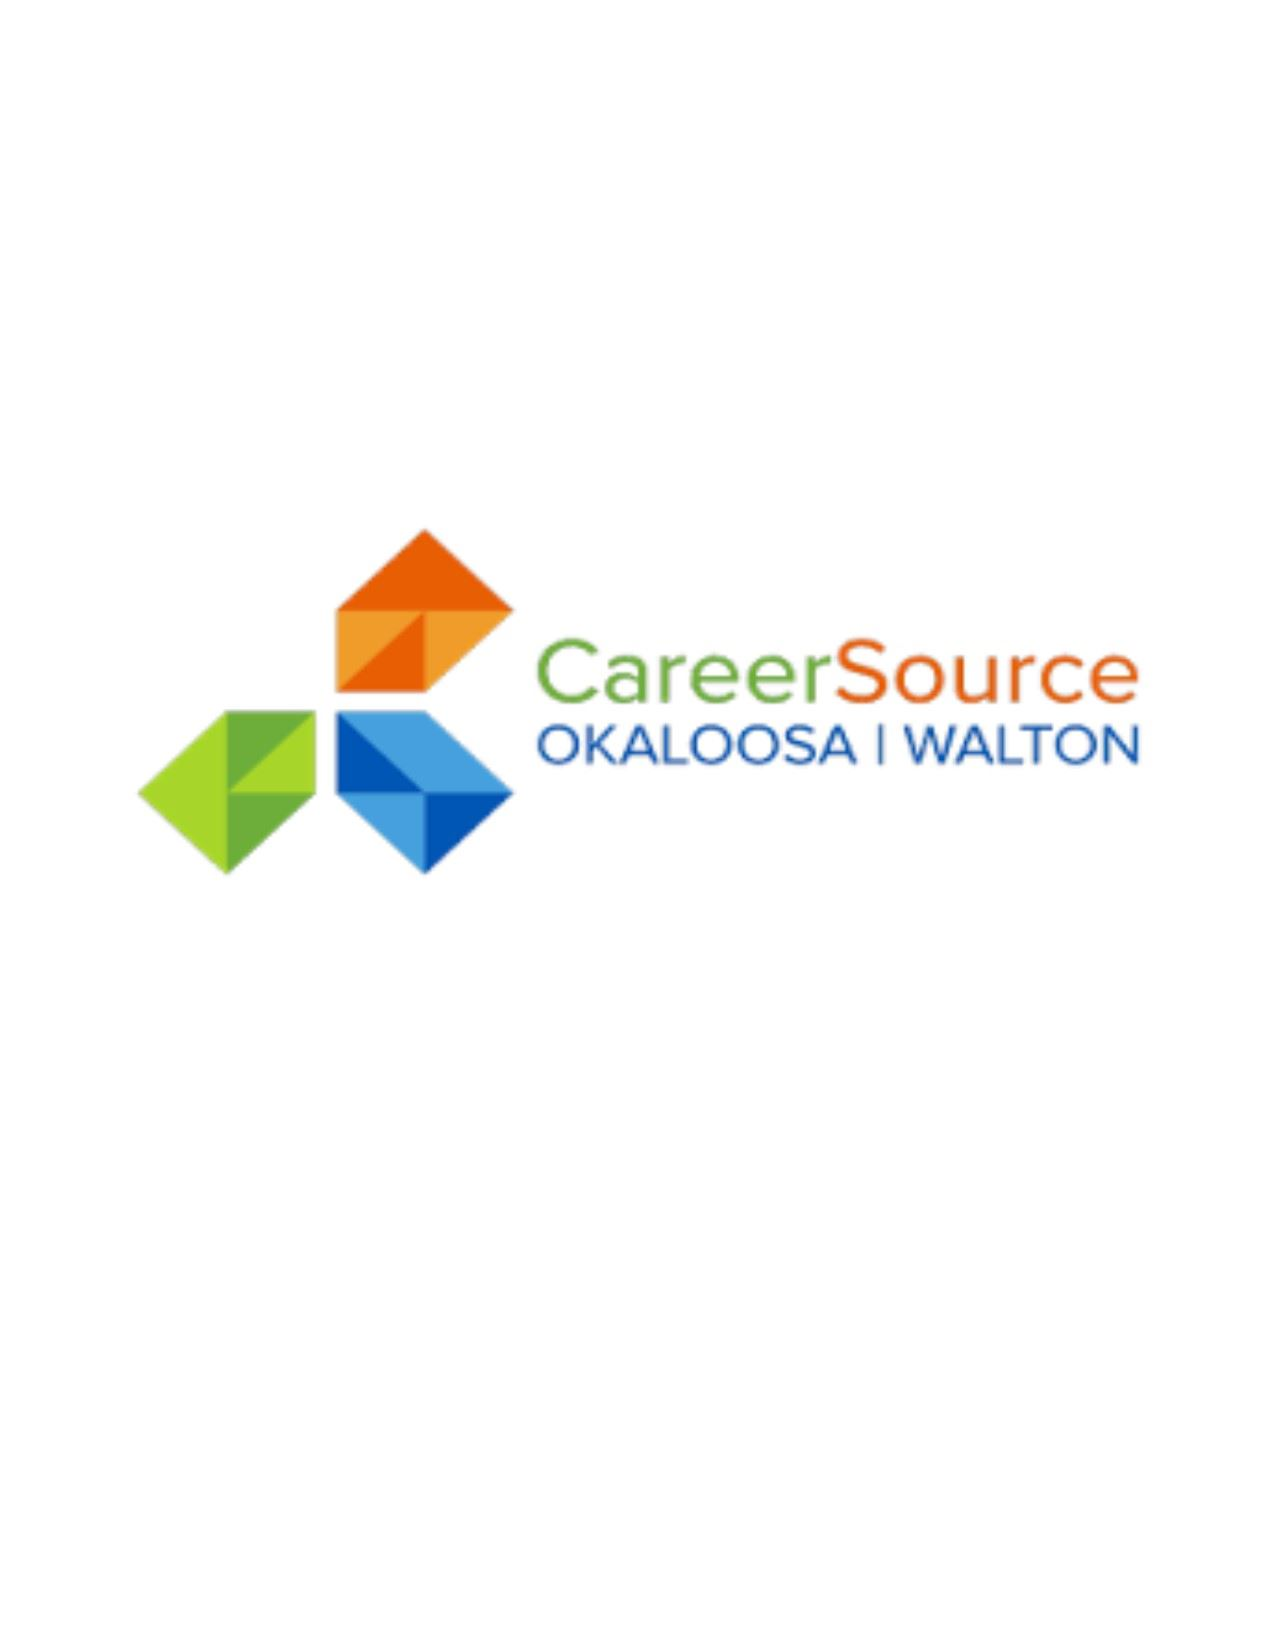 Okaloosa Walton Career Source